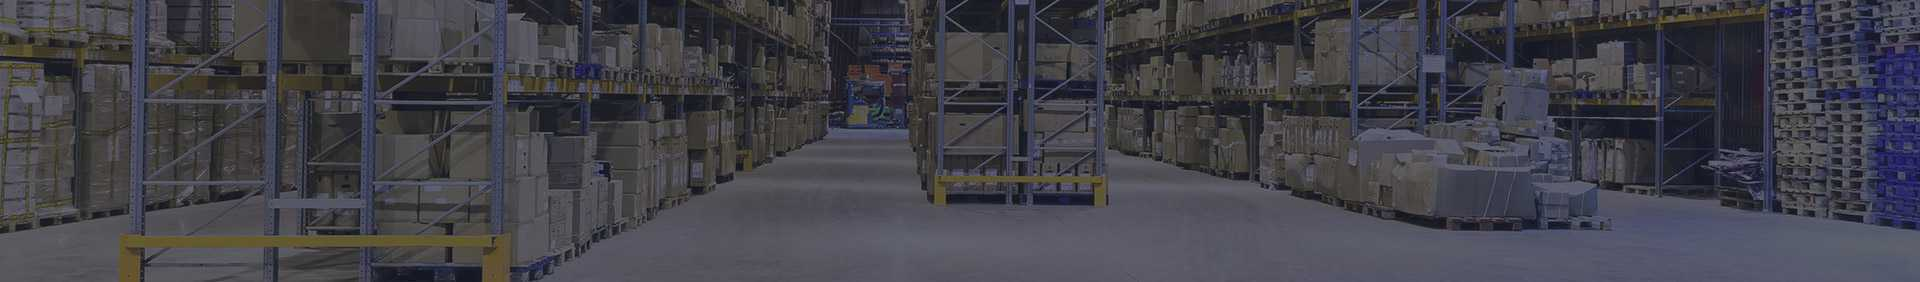 Rayonnage rack occasion Logistique transports